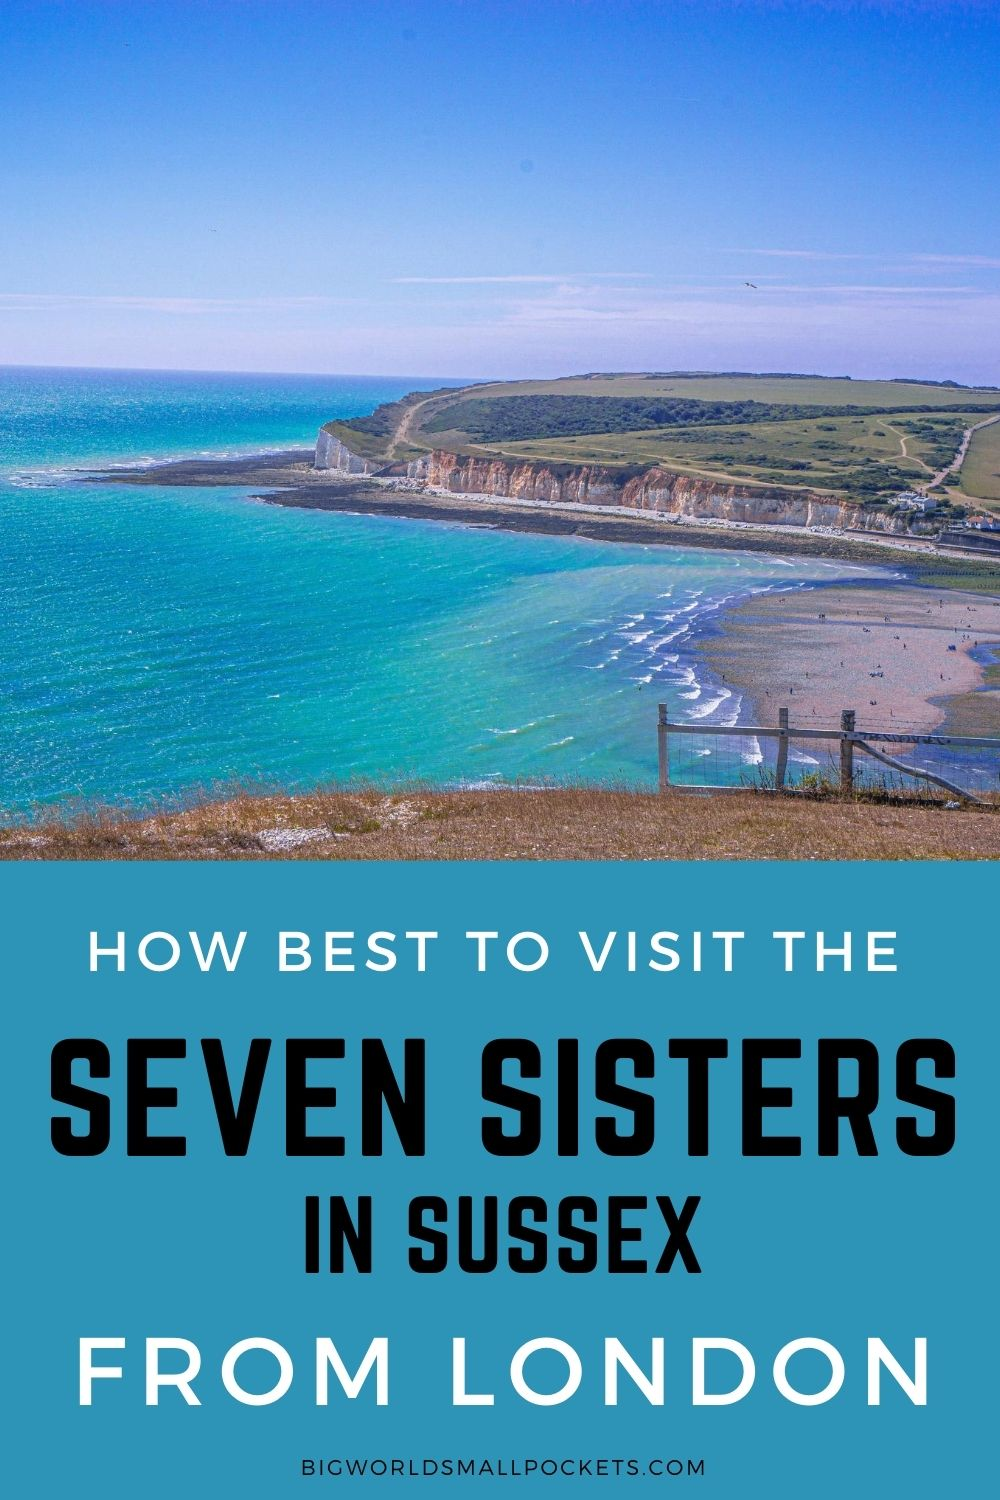 How Best to Visit the Seven Sisters Cliffs on a London Day Trip